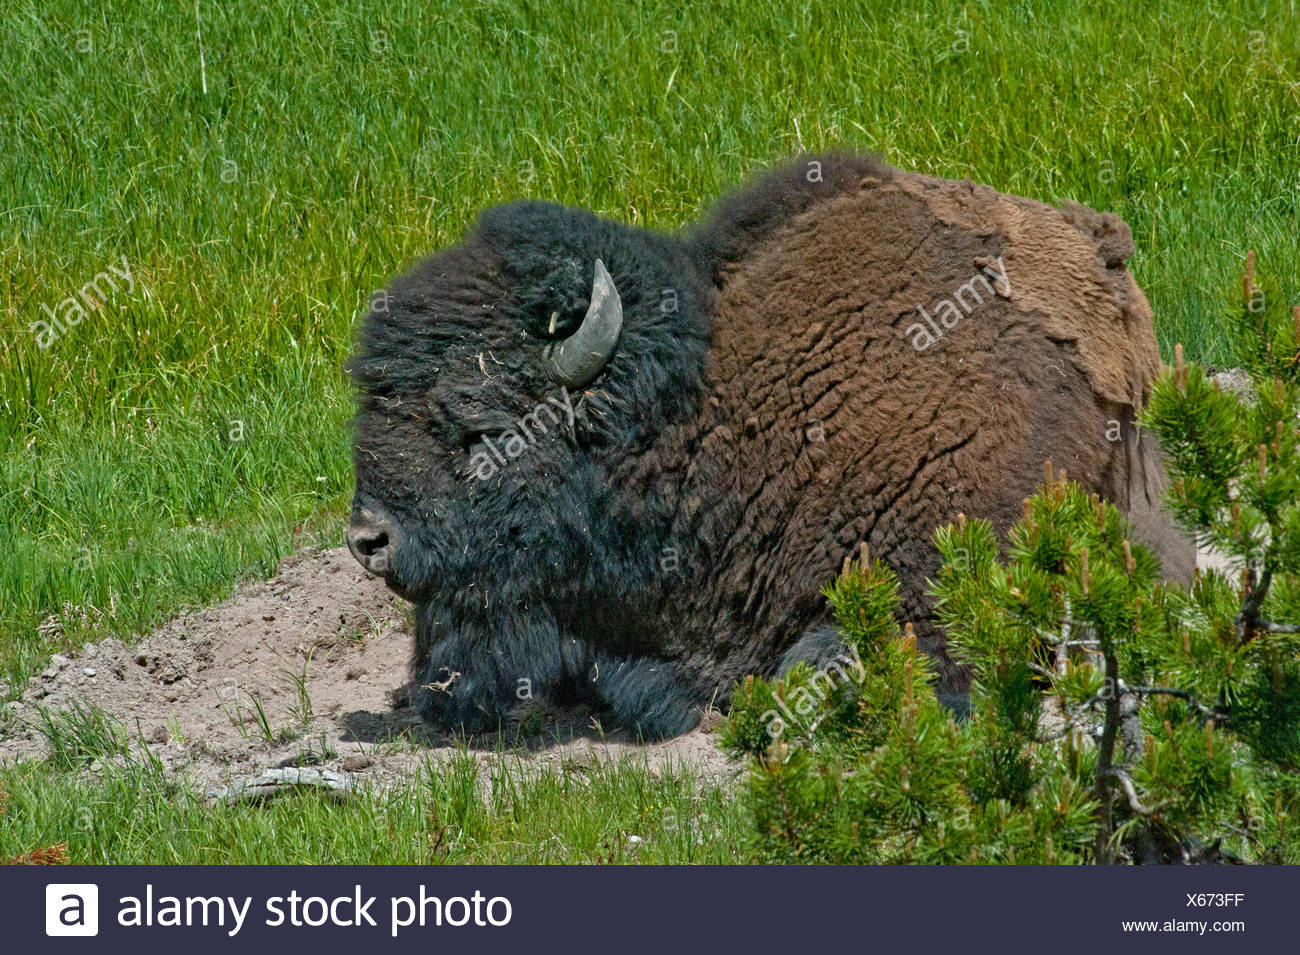 An American bison naps in a dust wallow. - Stock Image